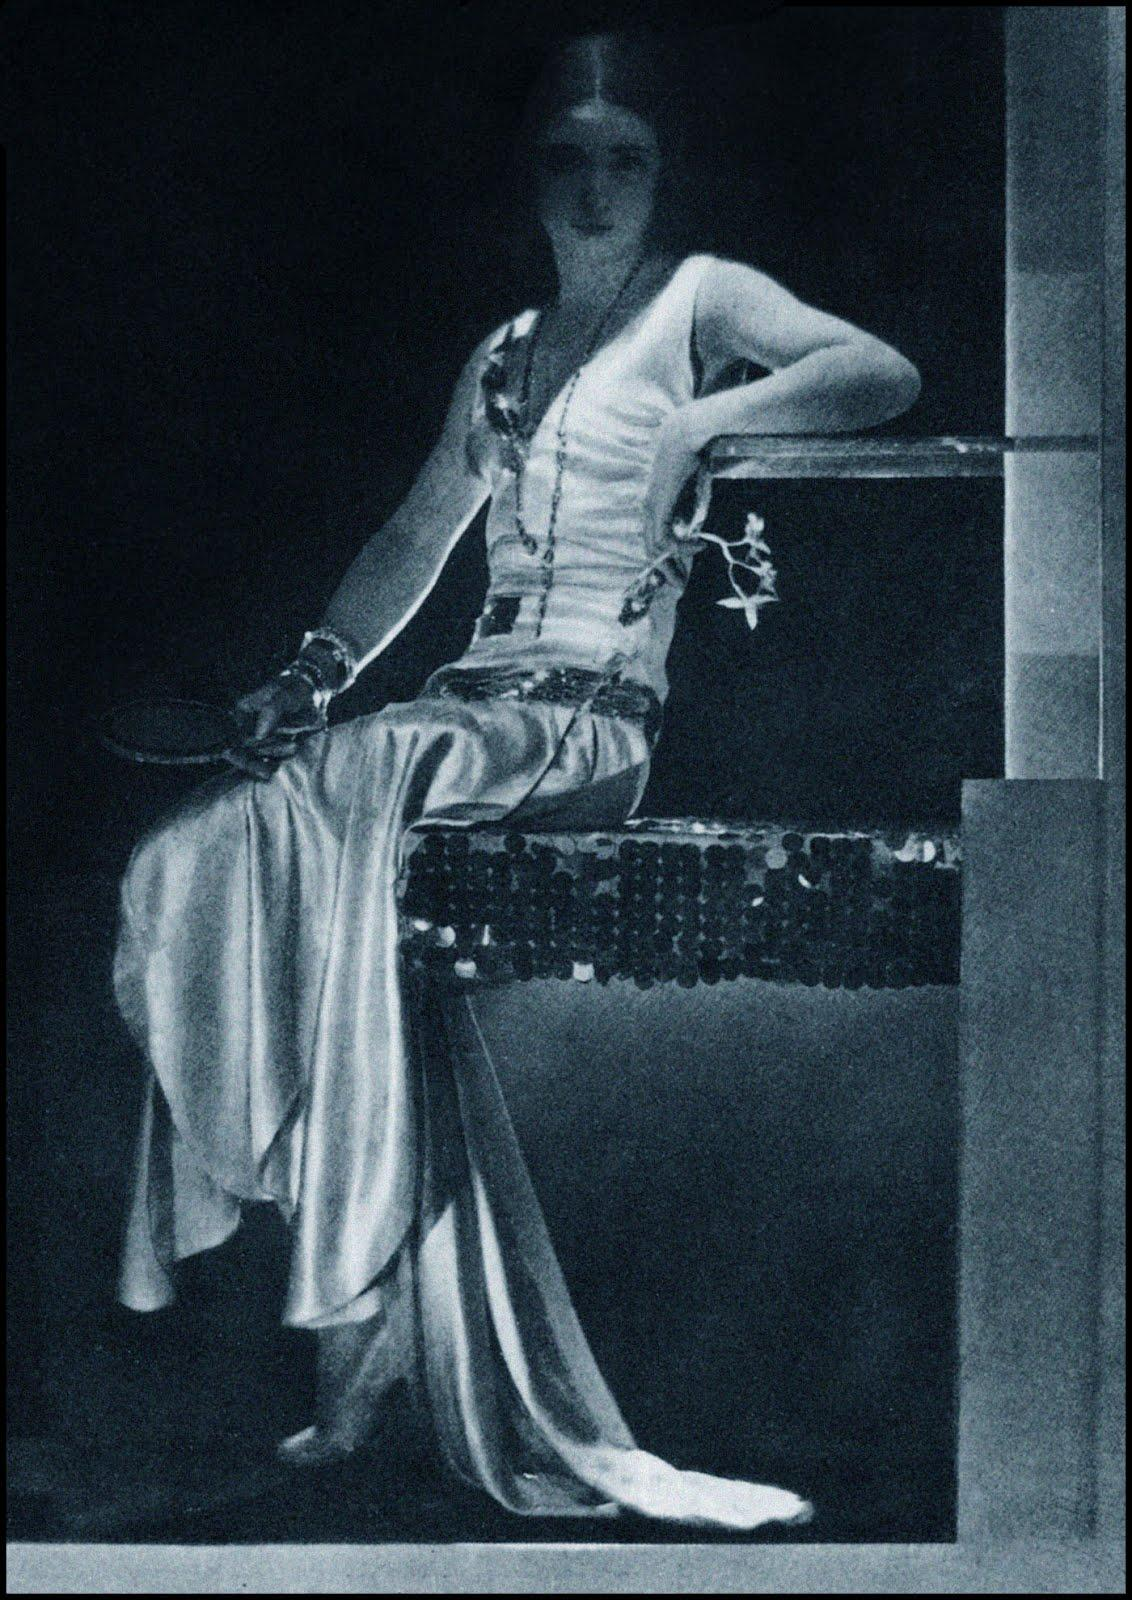 BaronDeMeyer_SatinDress_1930s_100.jpg (1132×1600)